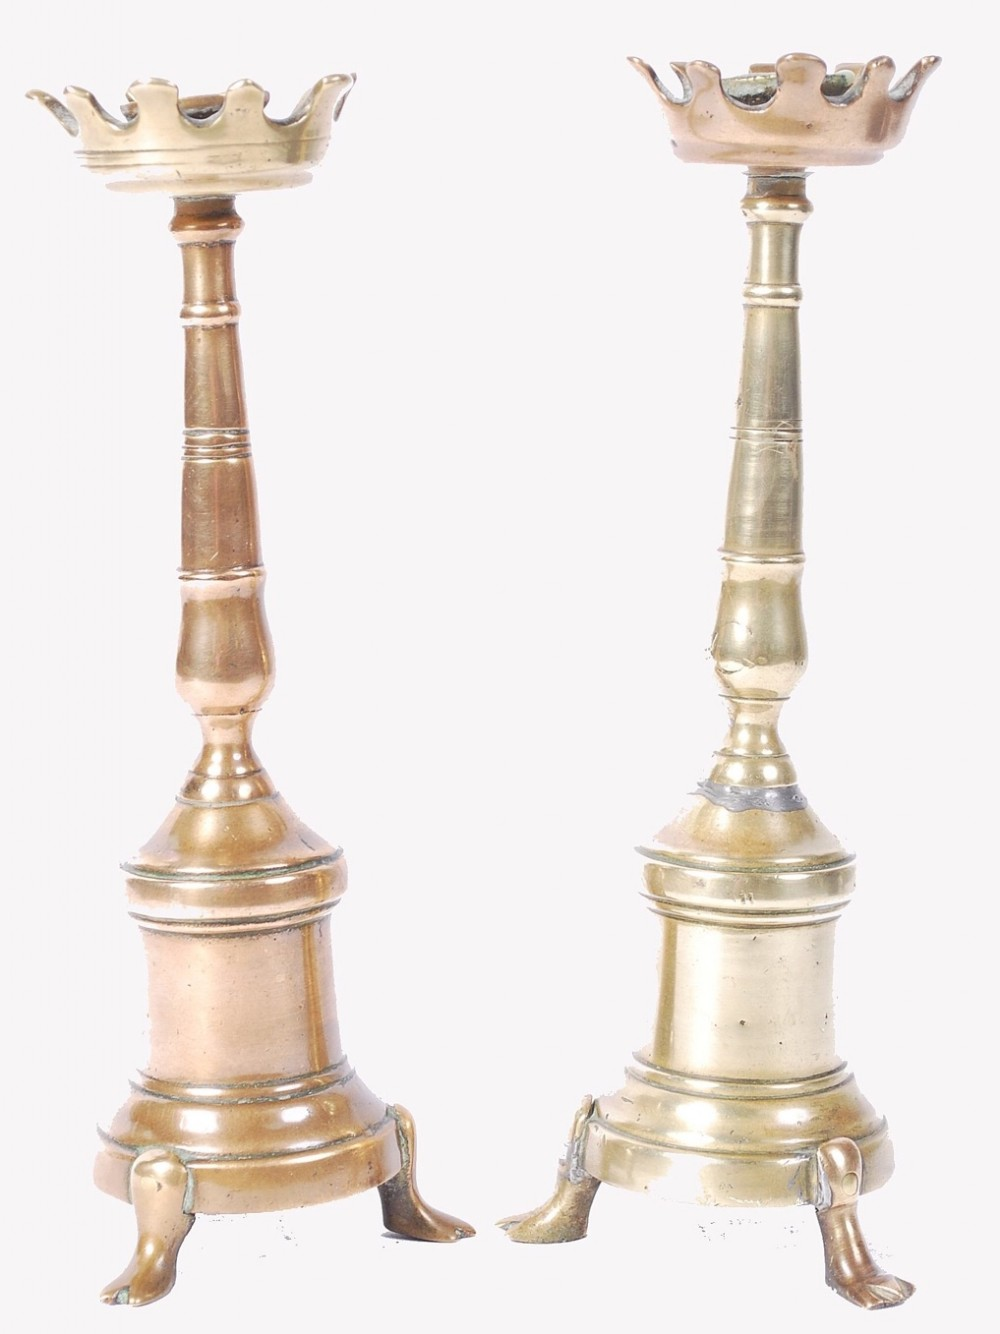 c17th pair of small brass candlesticks